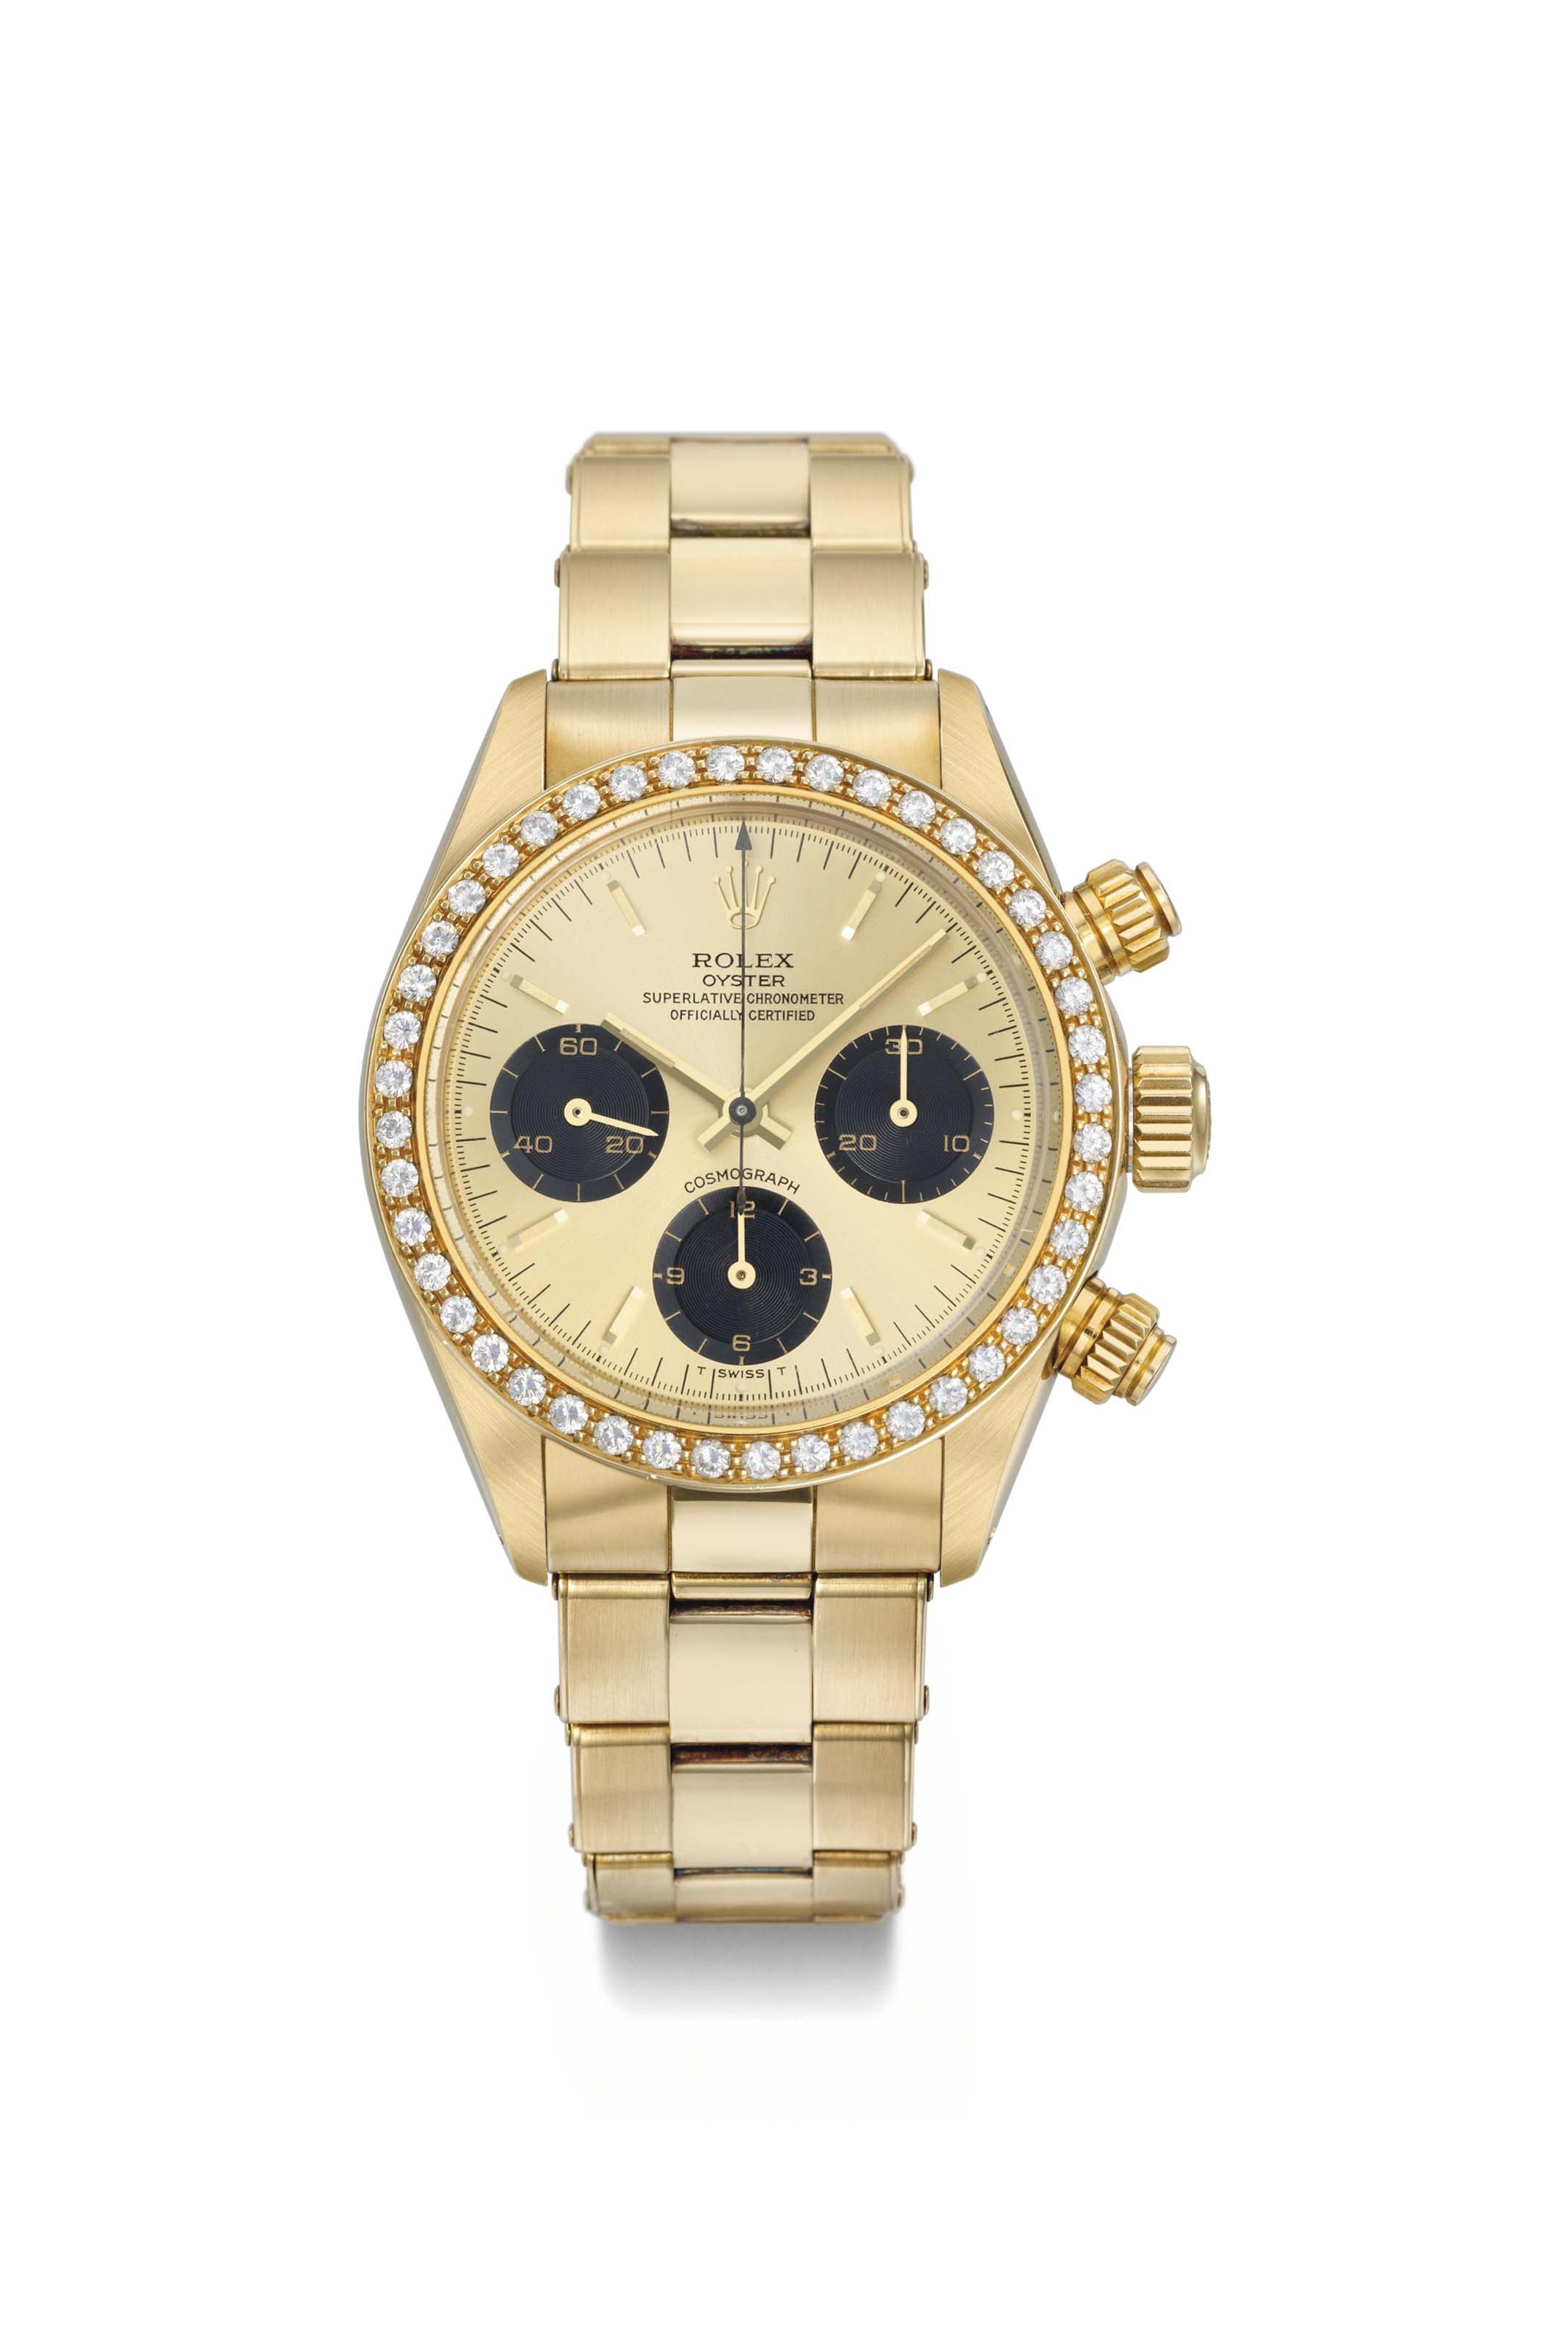 Rolex. An extremely rare and very attractive 18K gold and diamond-set chronograph wristwatch with bracelet, original guarantee and box